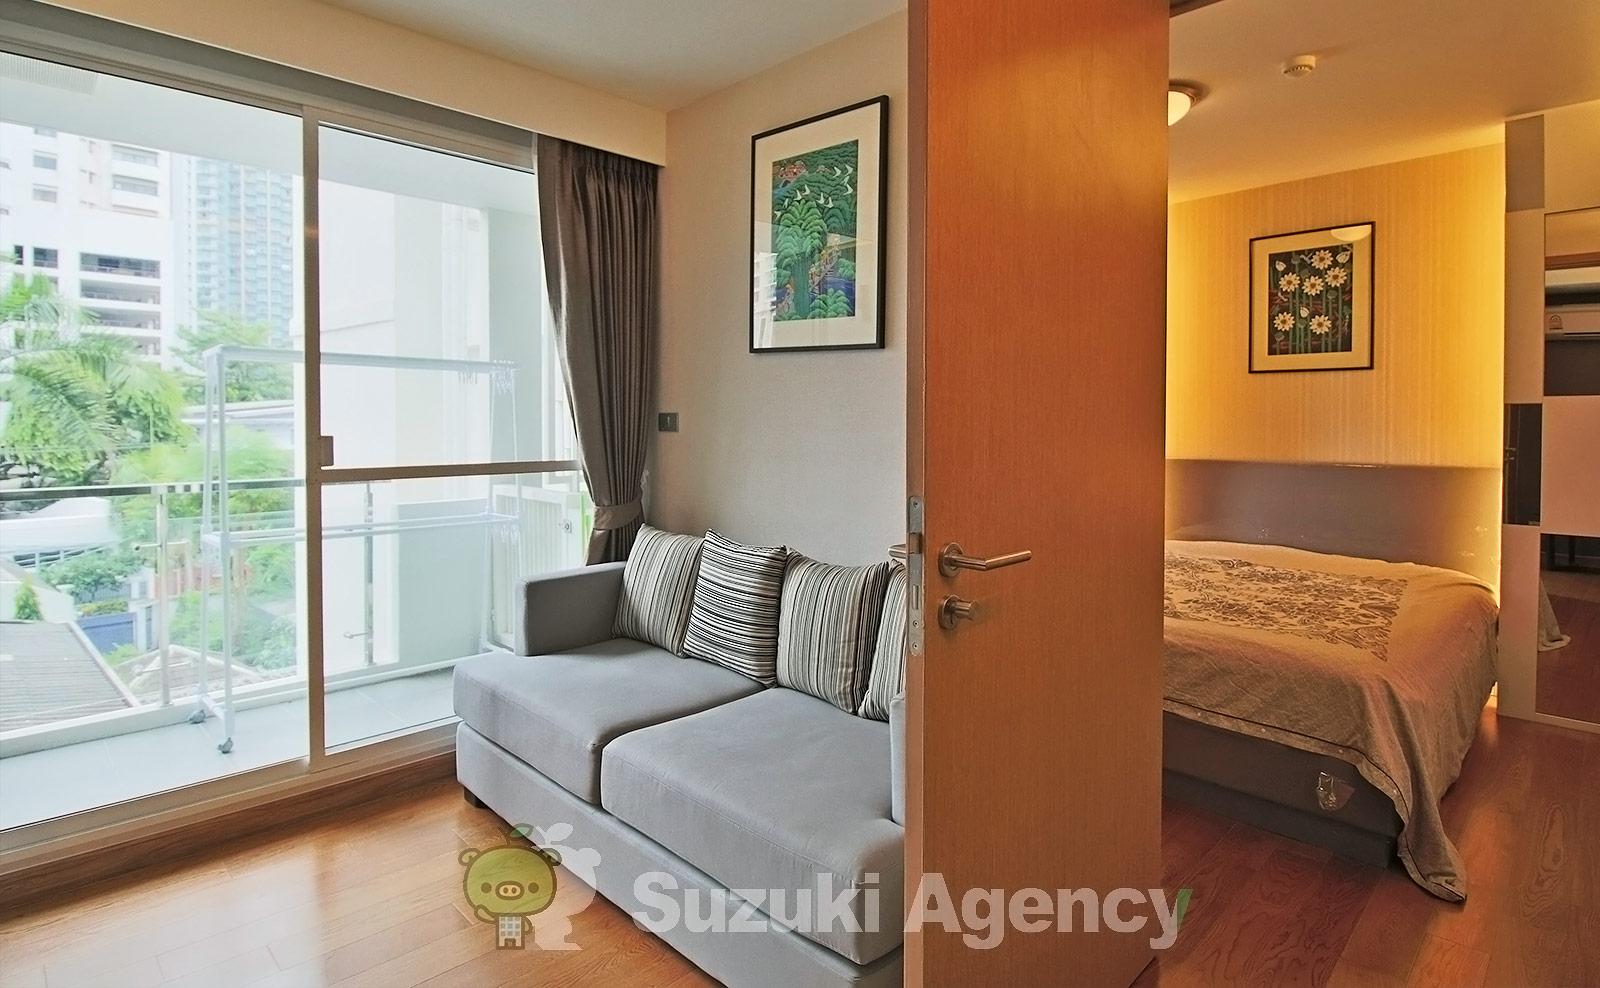 InterLux Premier Sukhumvit 13:1Bed Room Photos No.1